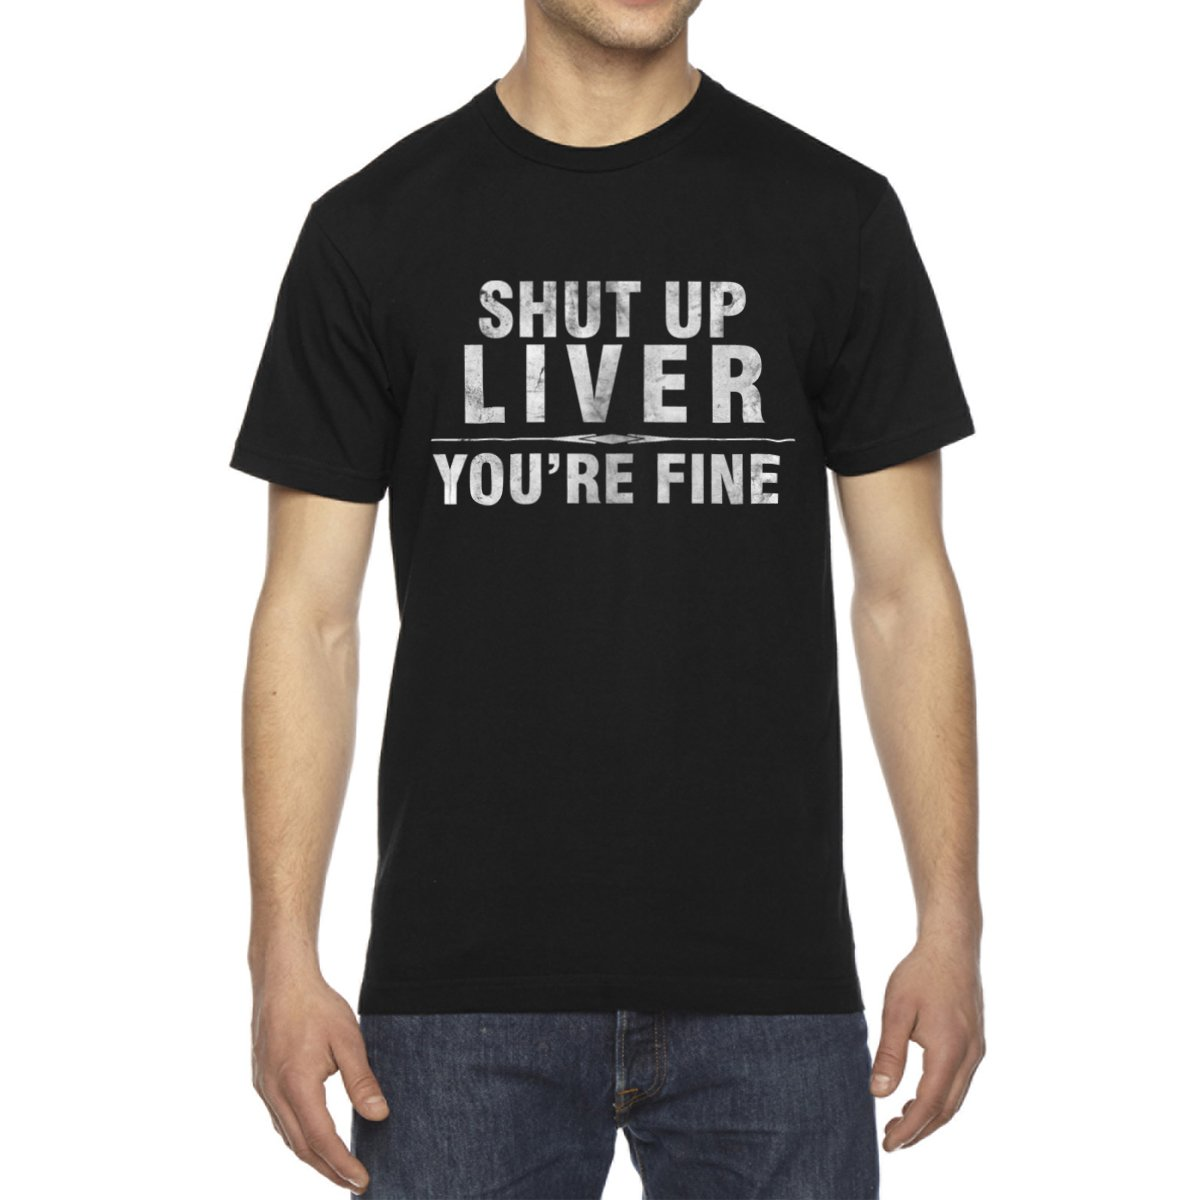 Shut Up Liver You're Fine Men's Crew Neck Cotton T-Shirt - [Black][Large]